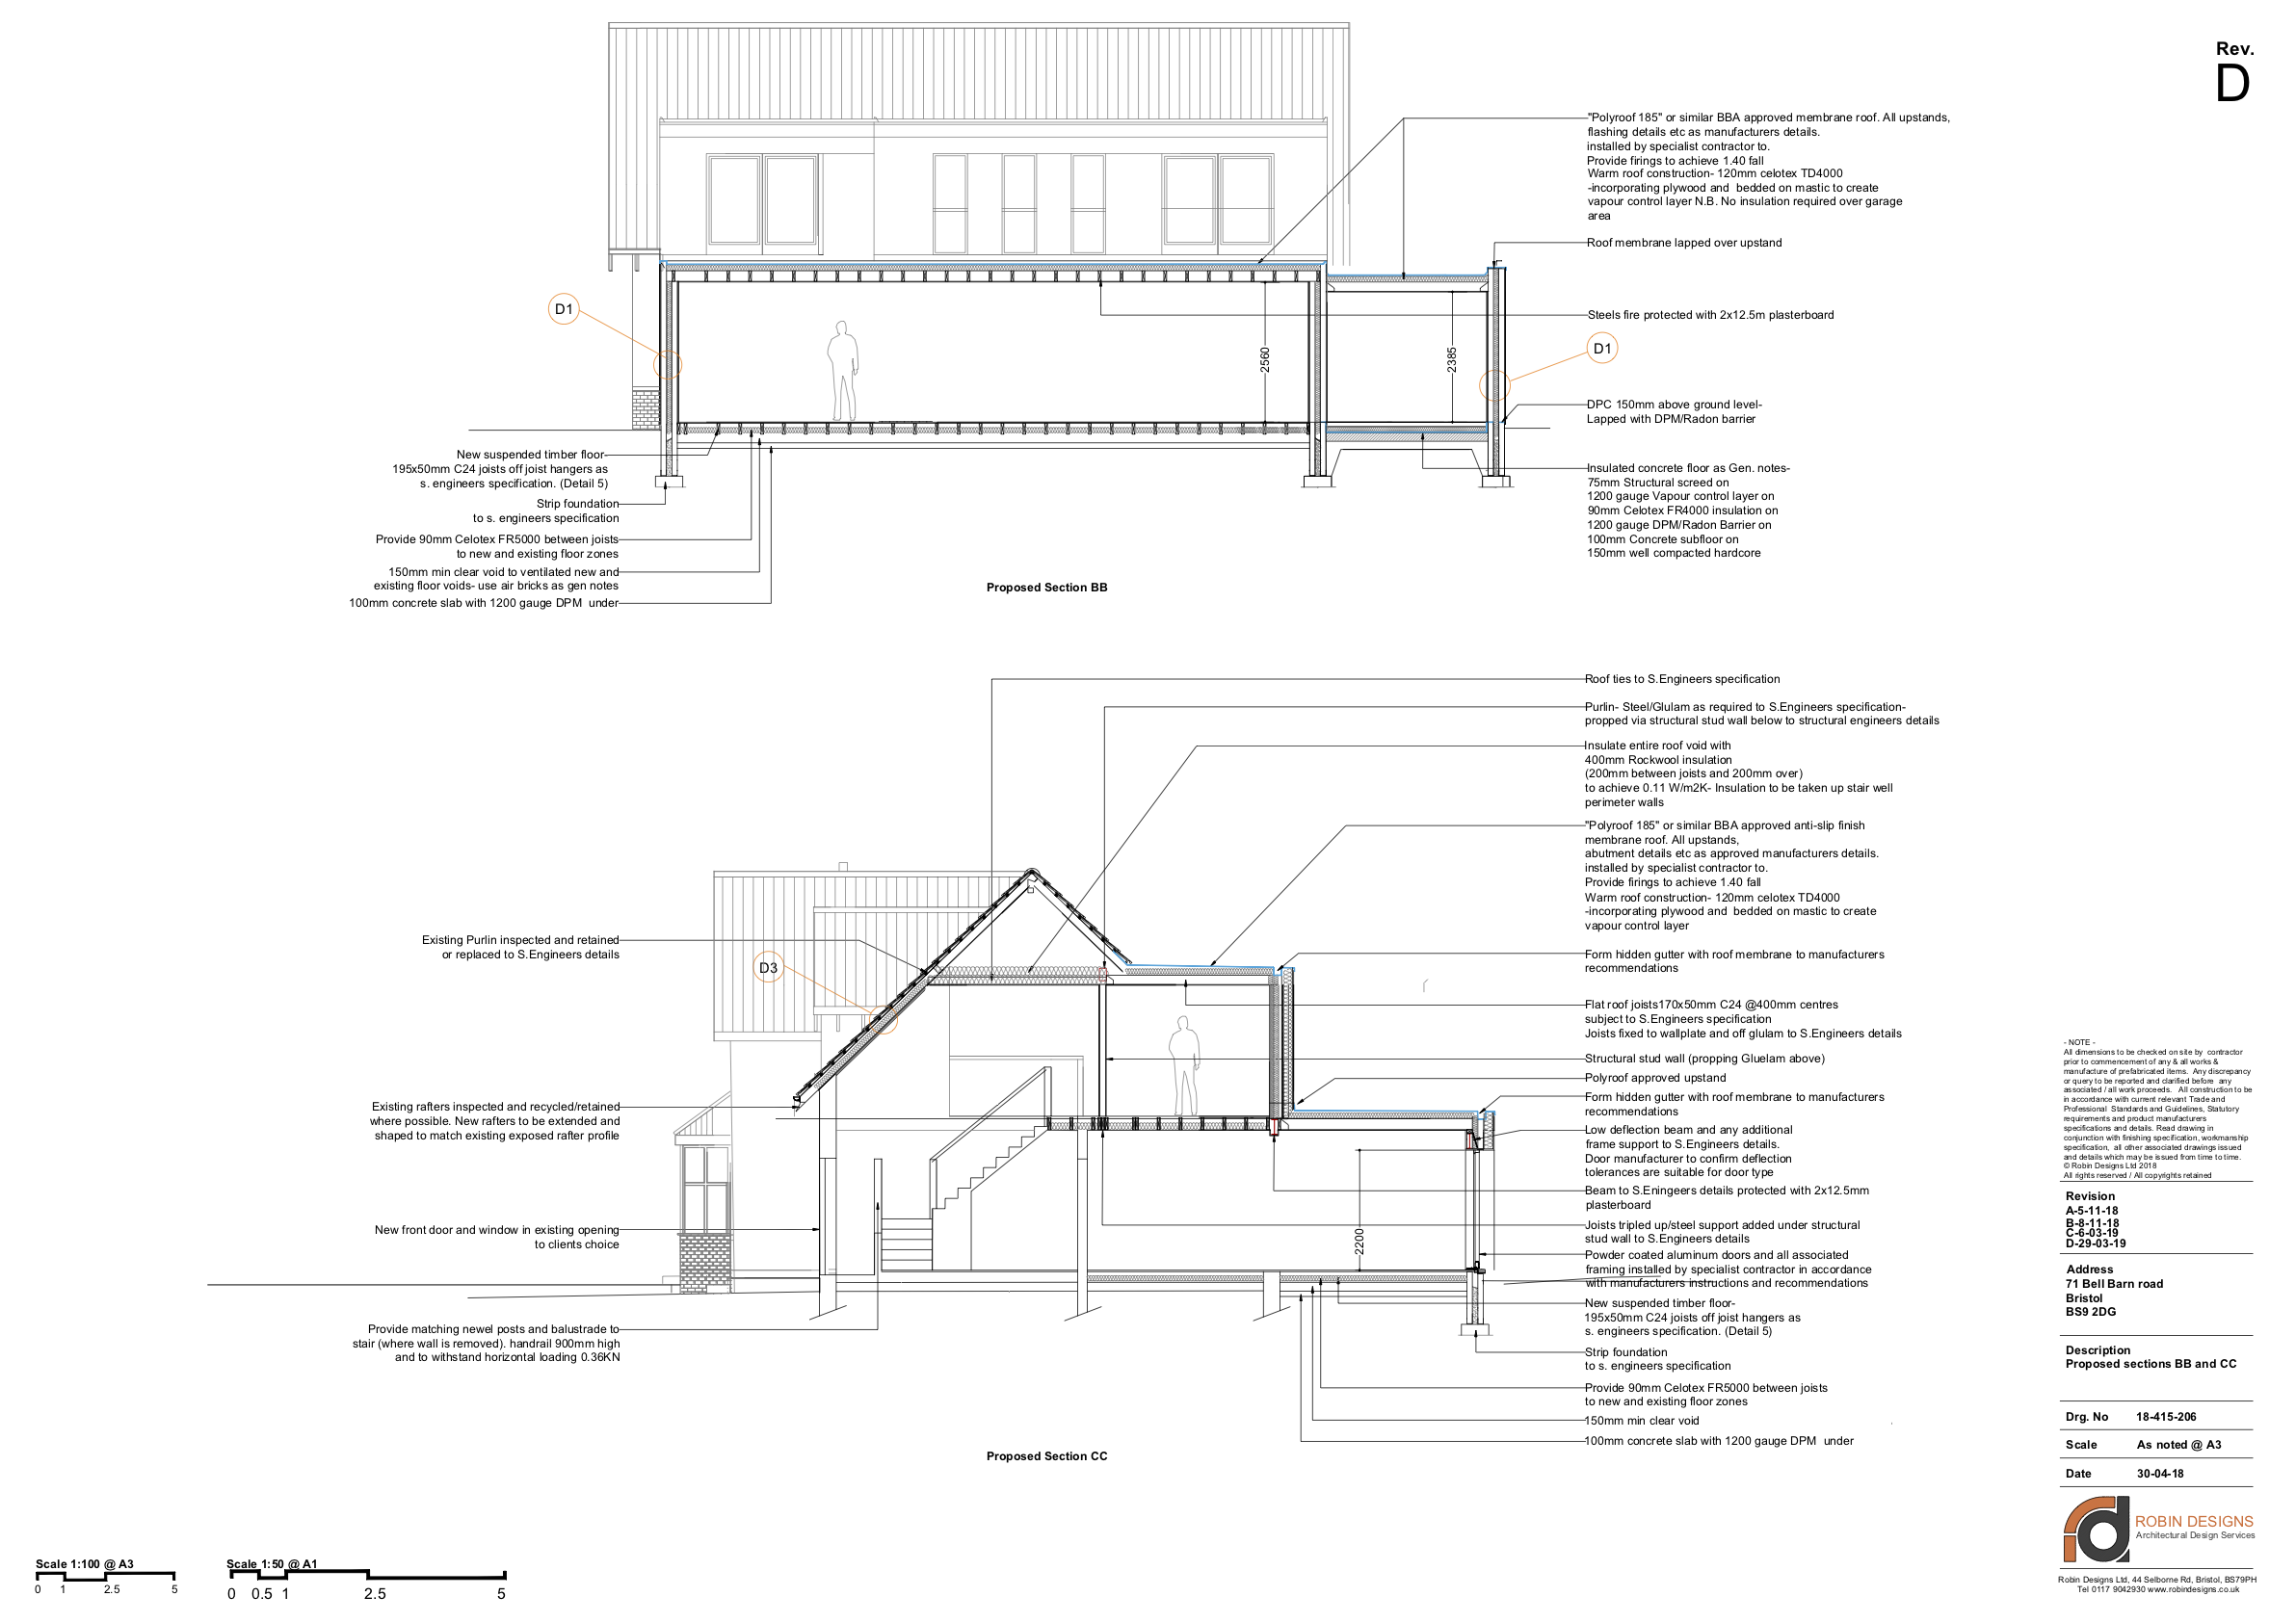 71 Bell barn construction drawings 29-03-19-206 Sect BB and CC.png